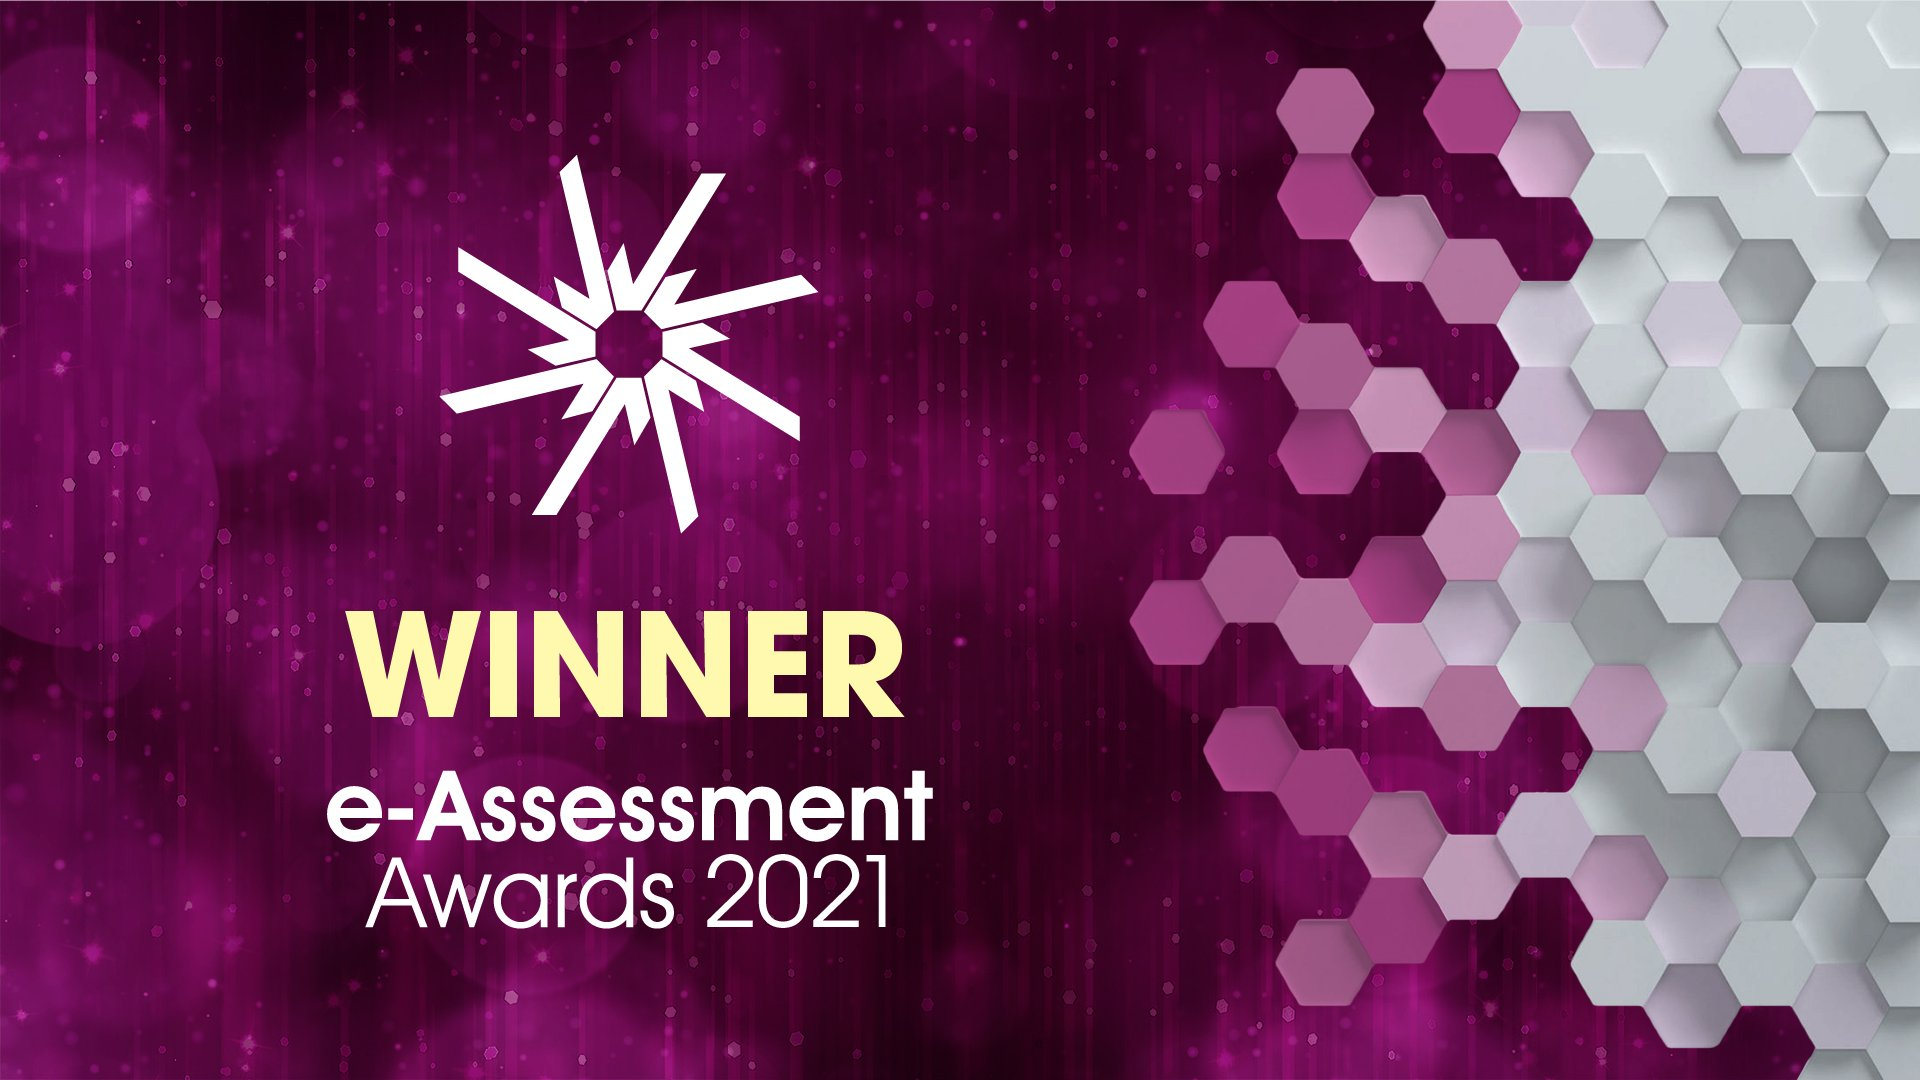 Case study from Cirrus: E-Assessment Award winner for Best Transformational Project 2021